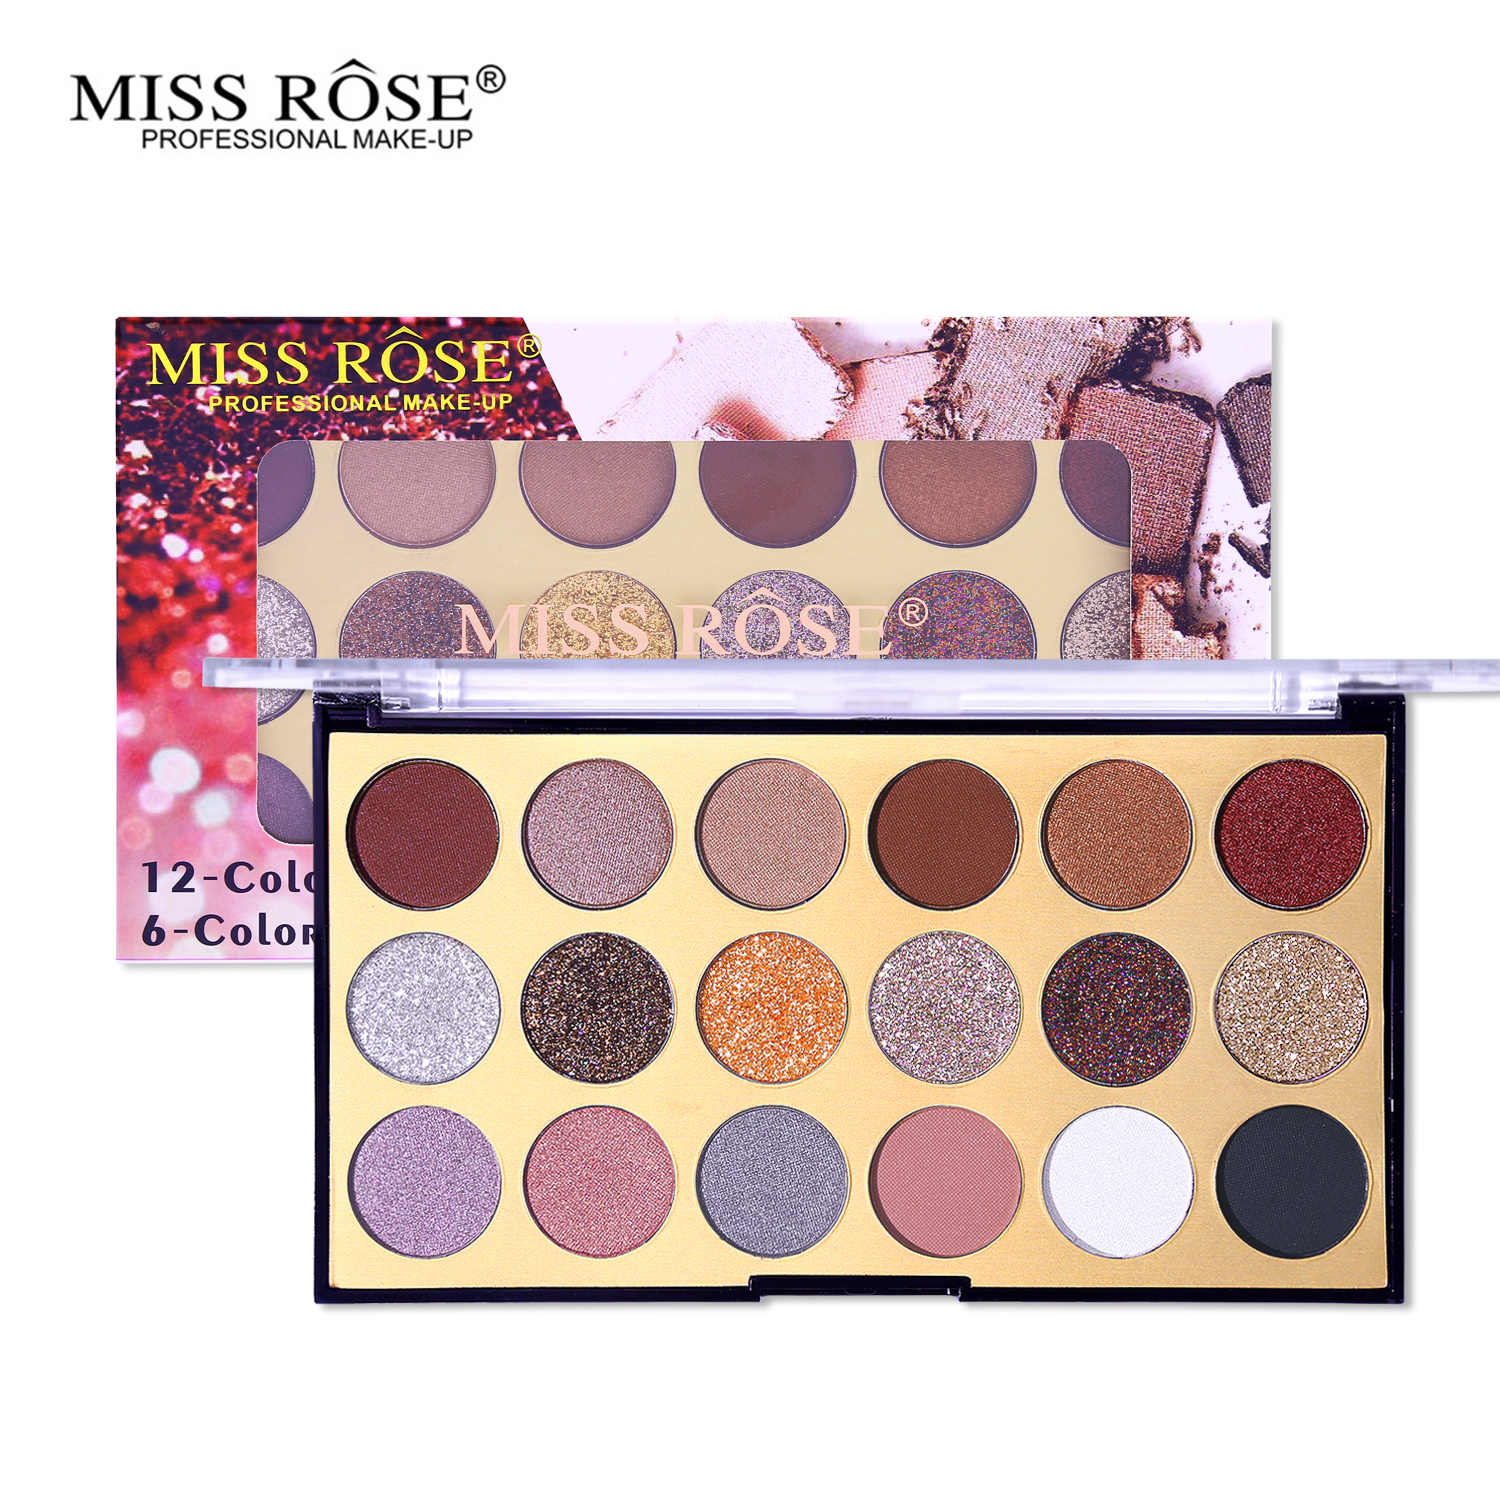 MISS ROSE 18 Kleuren Shimmer Matte Oogschaduw Glitter Pressed Powder Oogschaduw Make-Up Palet Metallic Glans Waterdichte Oogleden